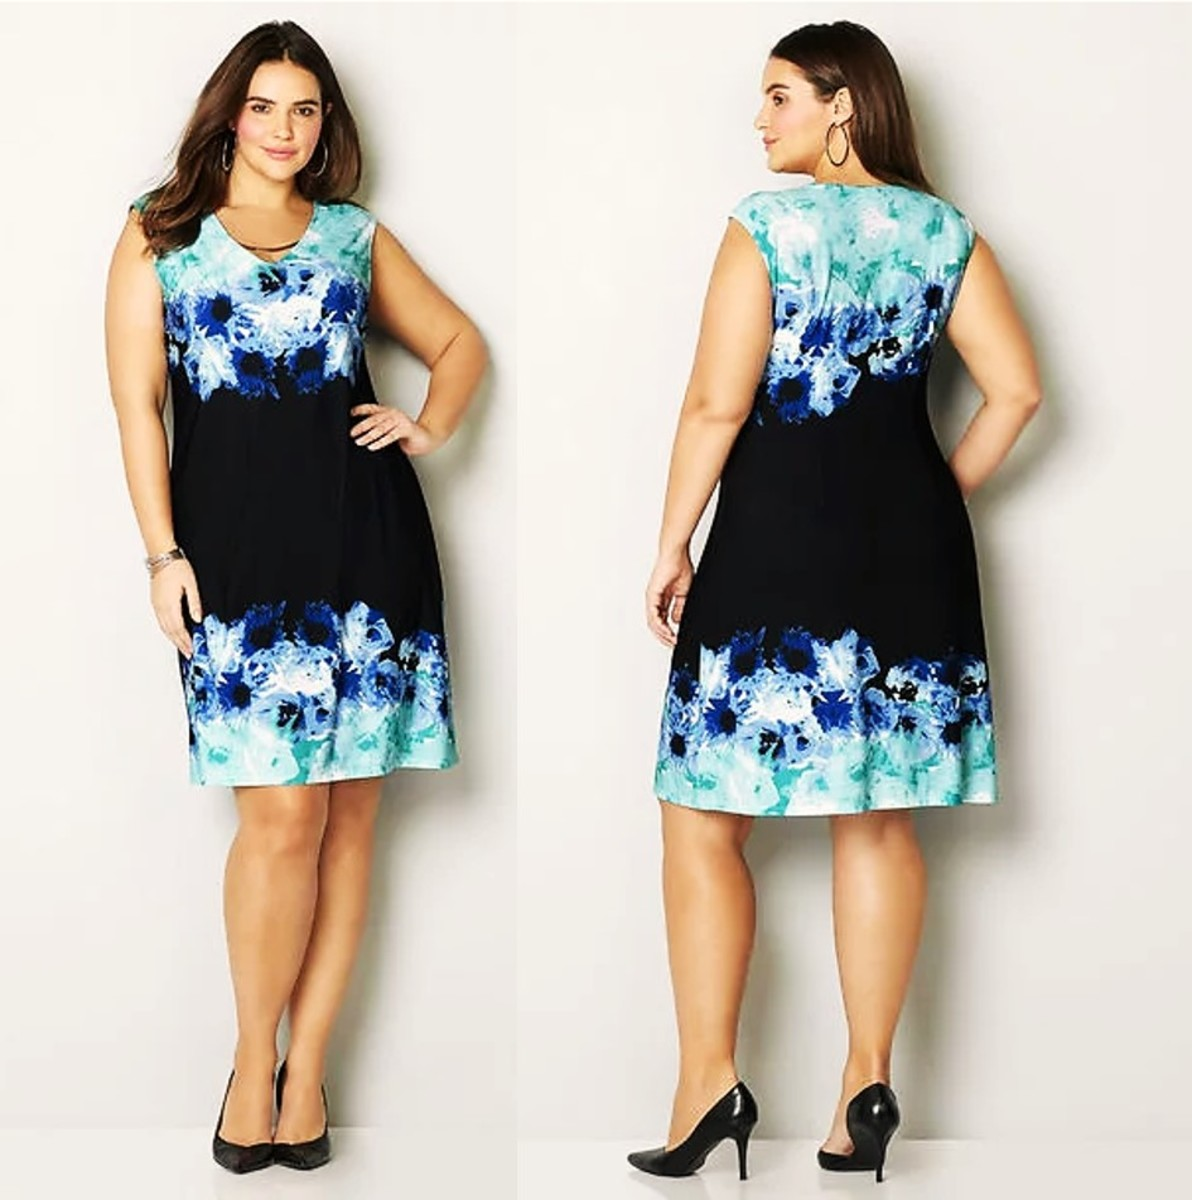 feminine sheath dress with beautiful border of flowers at the neck and hemline